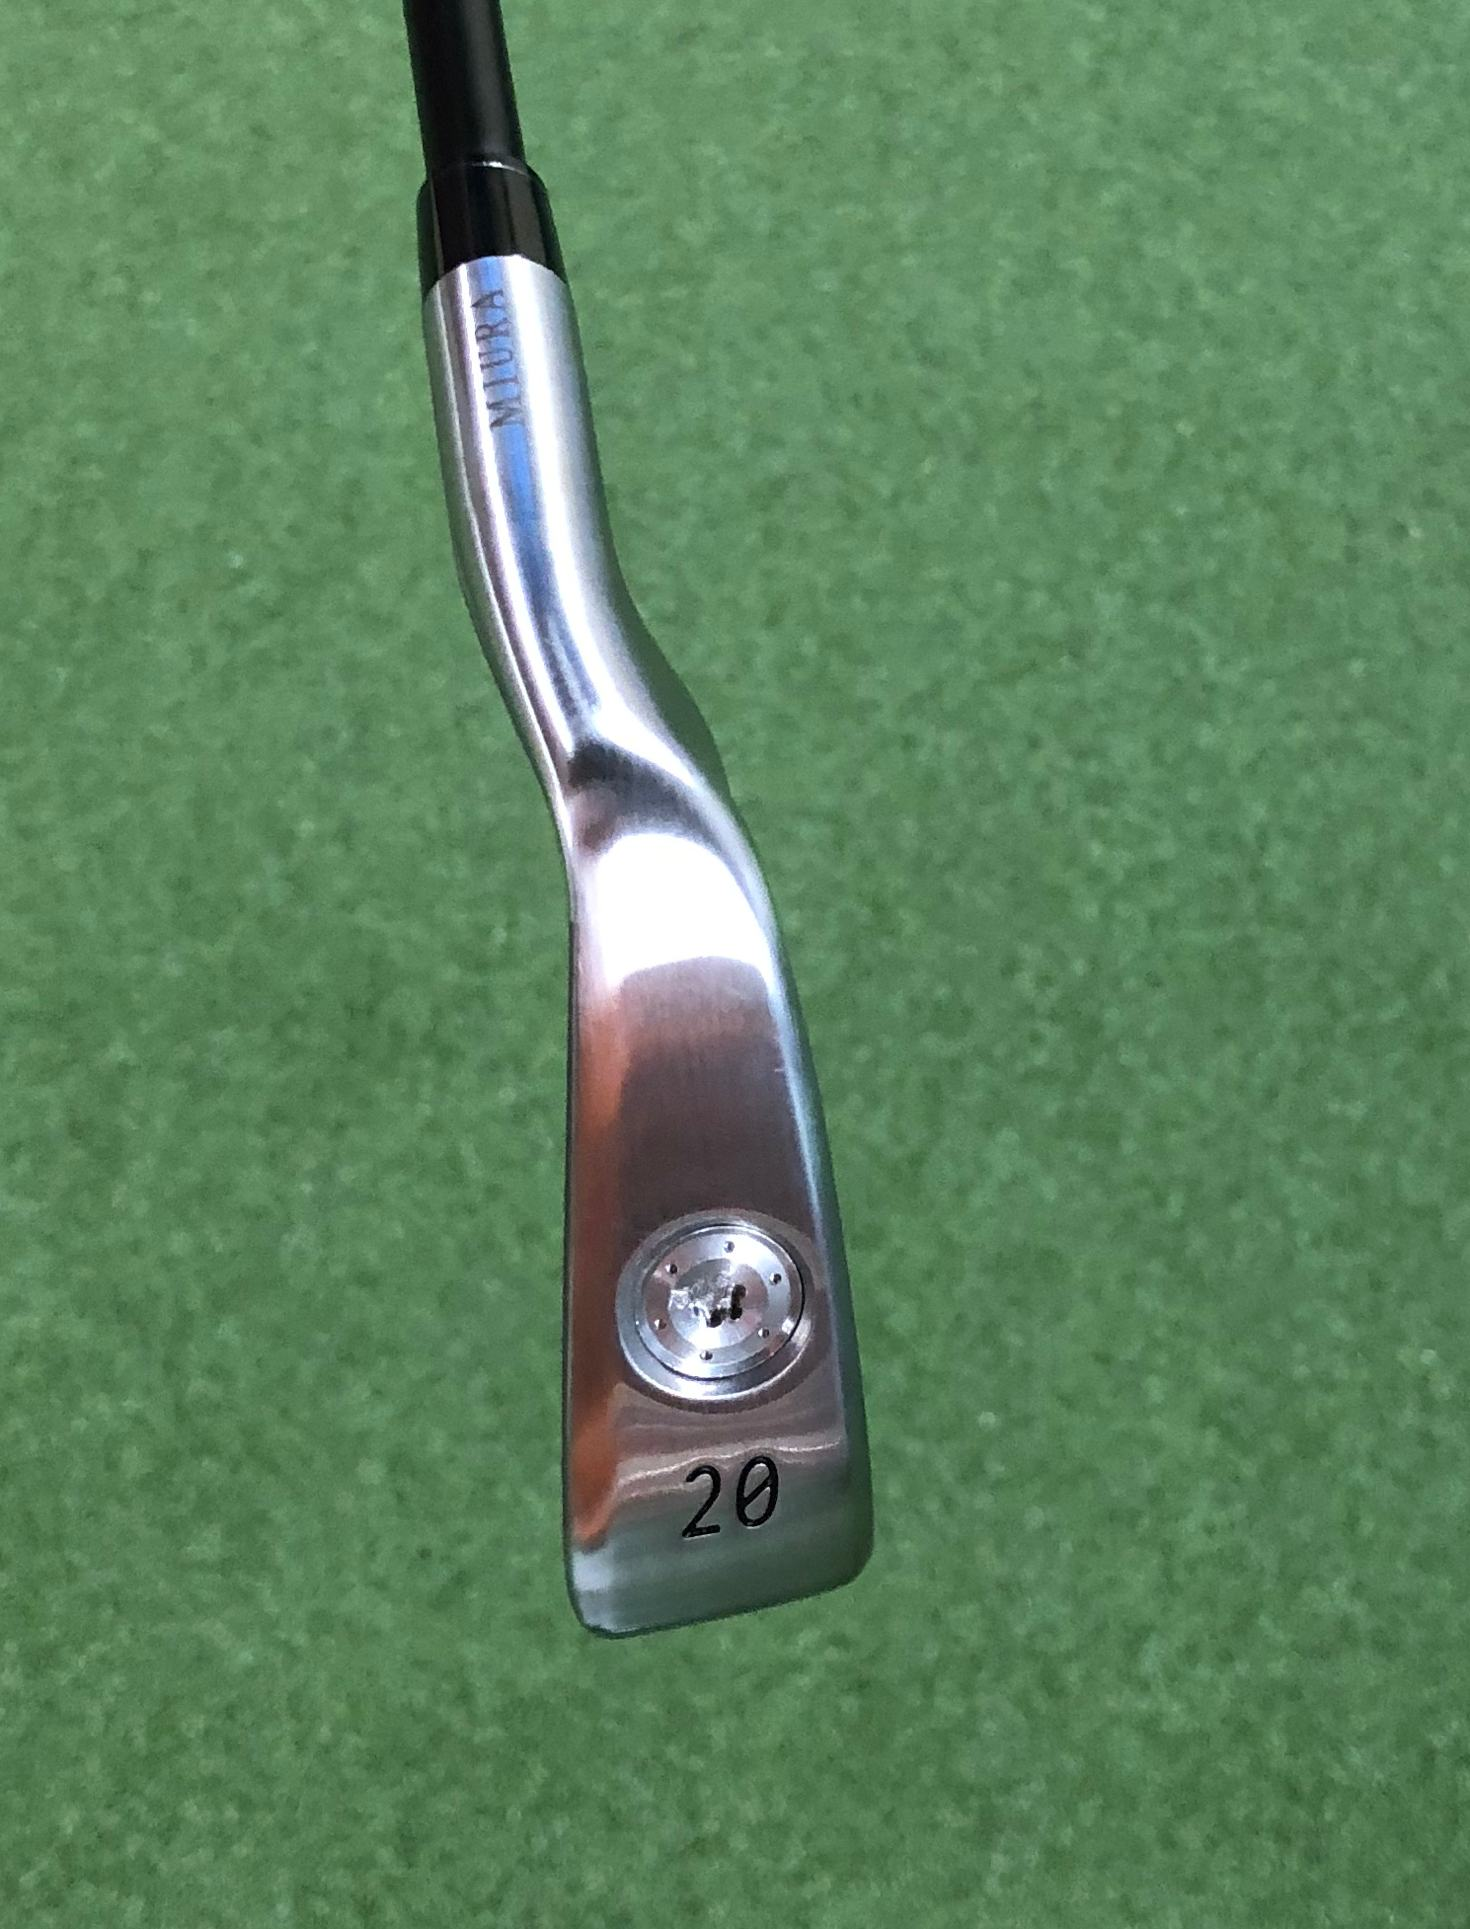 Miura ICL-601 Sole Weight